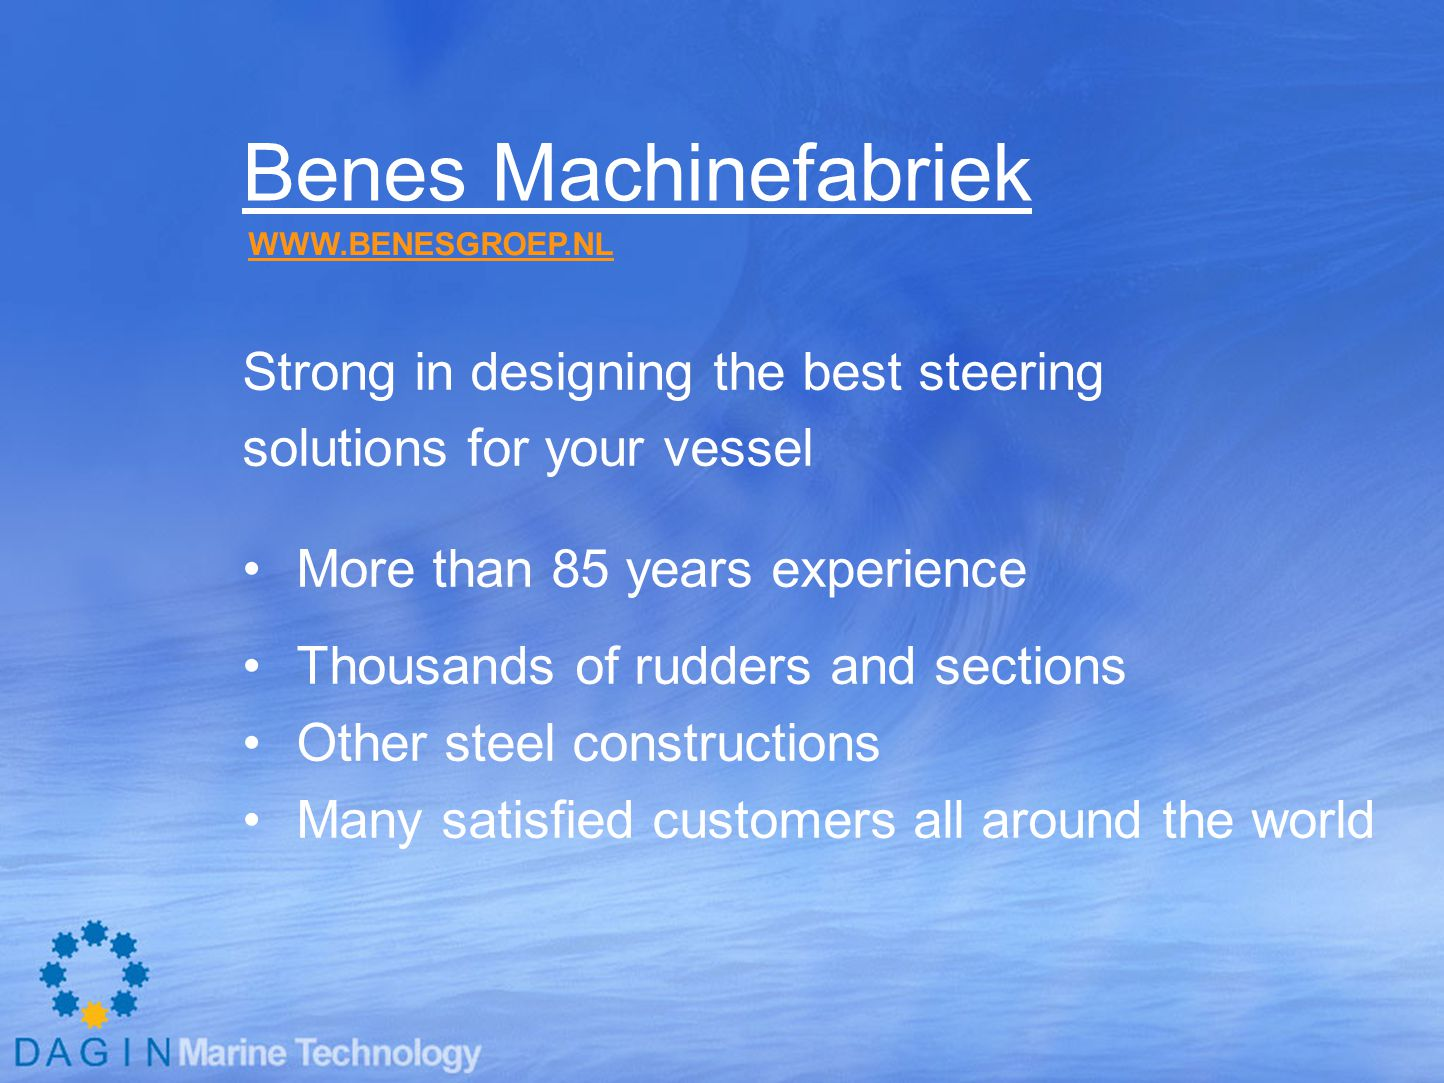 Benes Machinefabriek Strong in designing the best steering